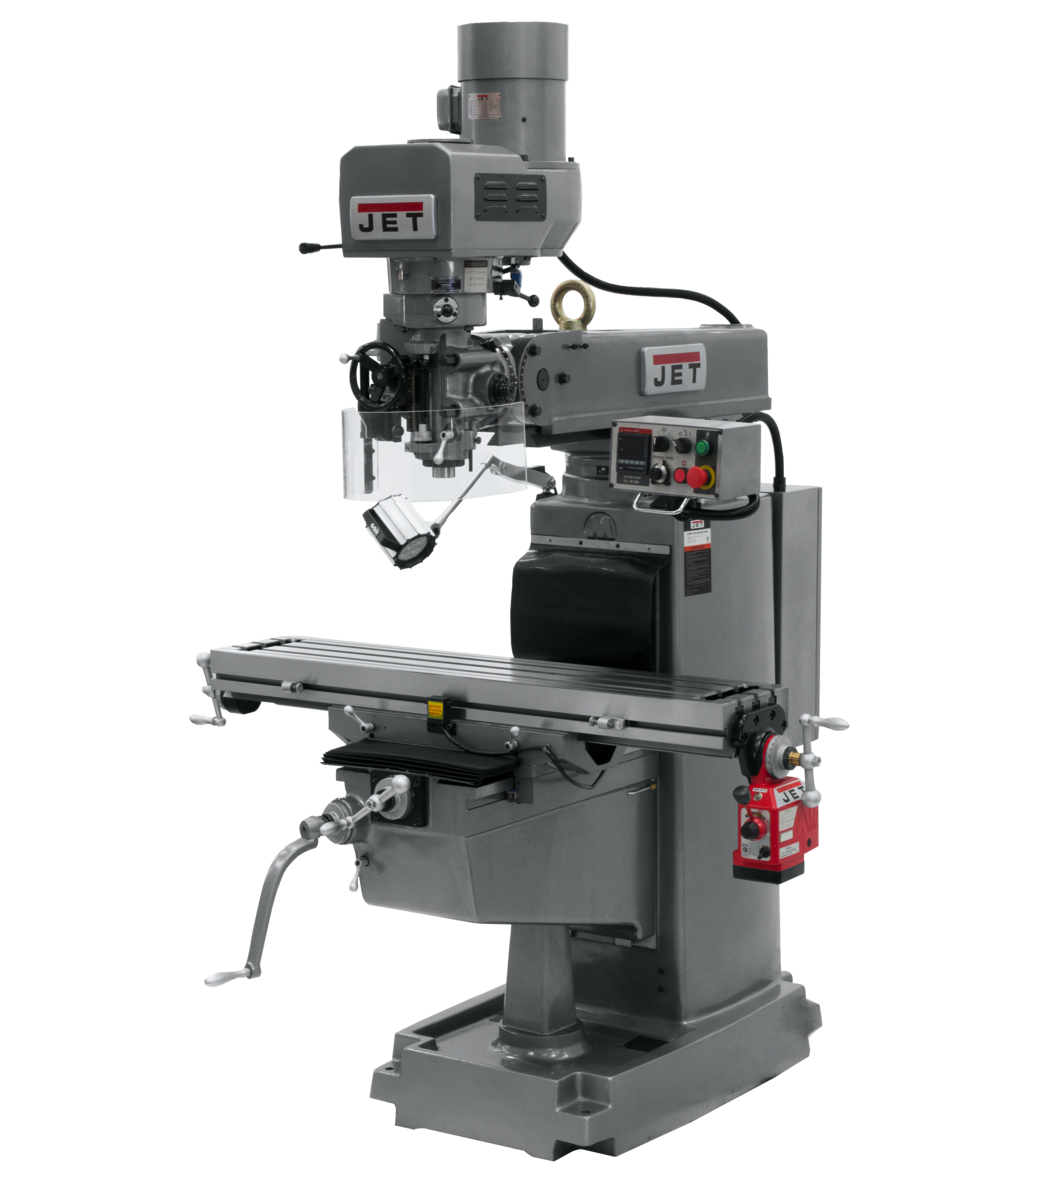 JTM-1050EVS2/230 Mill With 3-Axis Newall DP700 DRO (Knee) With X and Y-Axis Powerfeeds and Air Powered Draw Bar